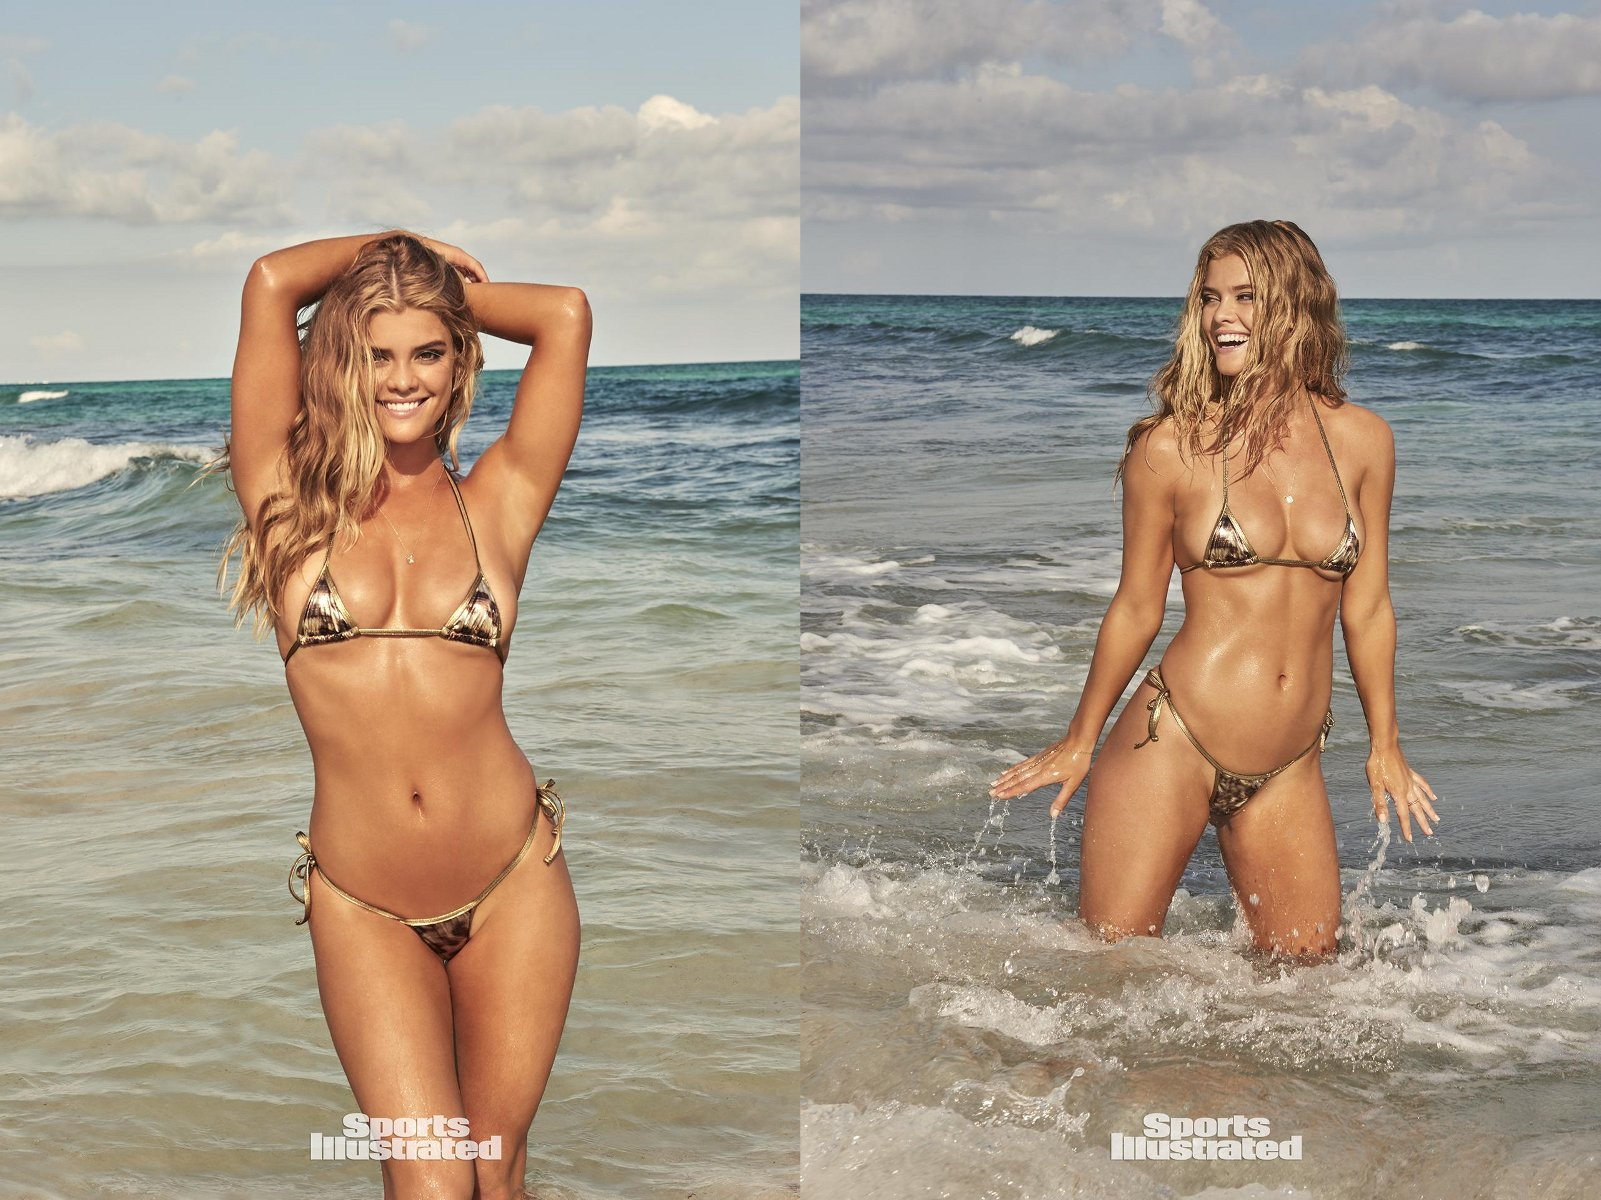 Sports Illustrated 2017 Swimsuit Model - Nina Agdal